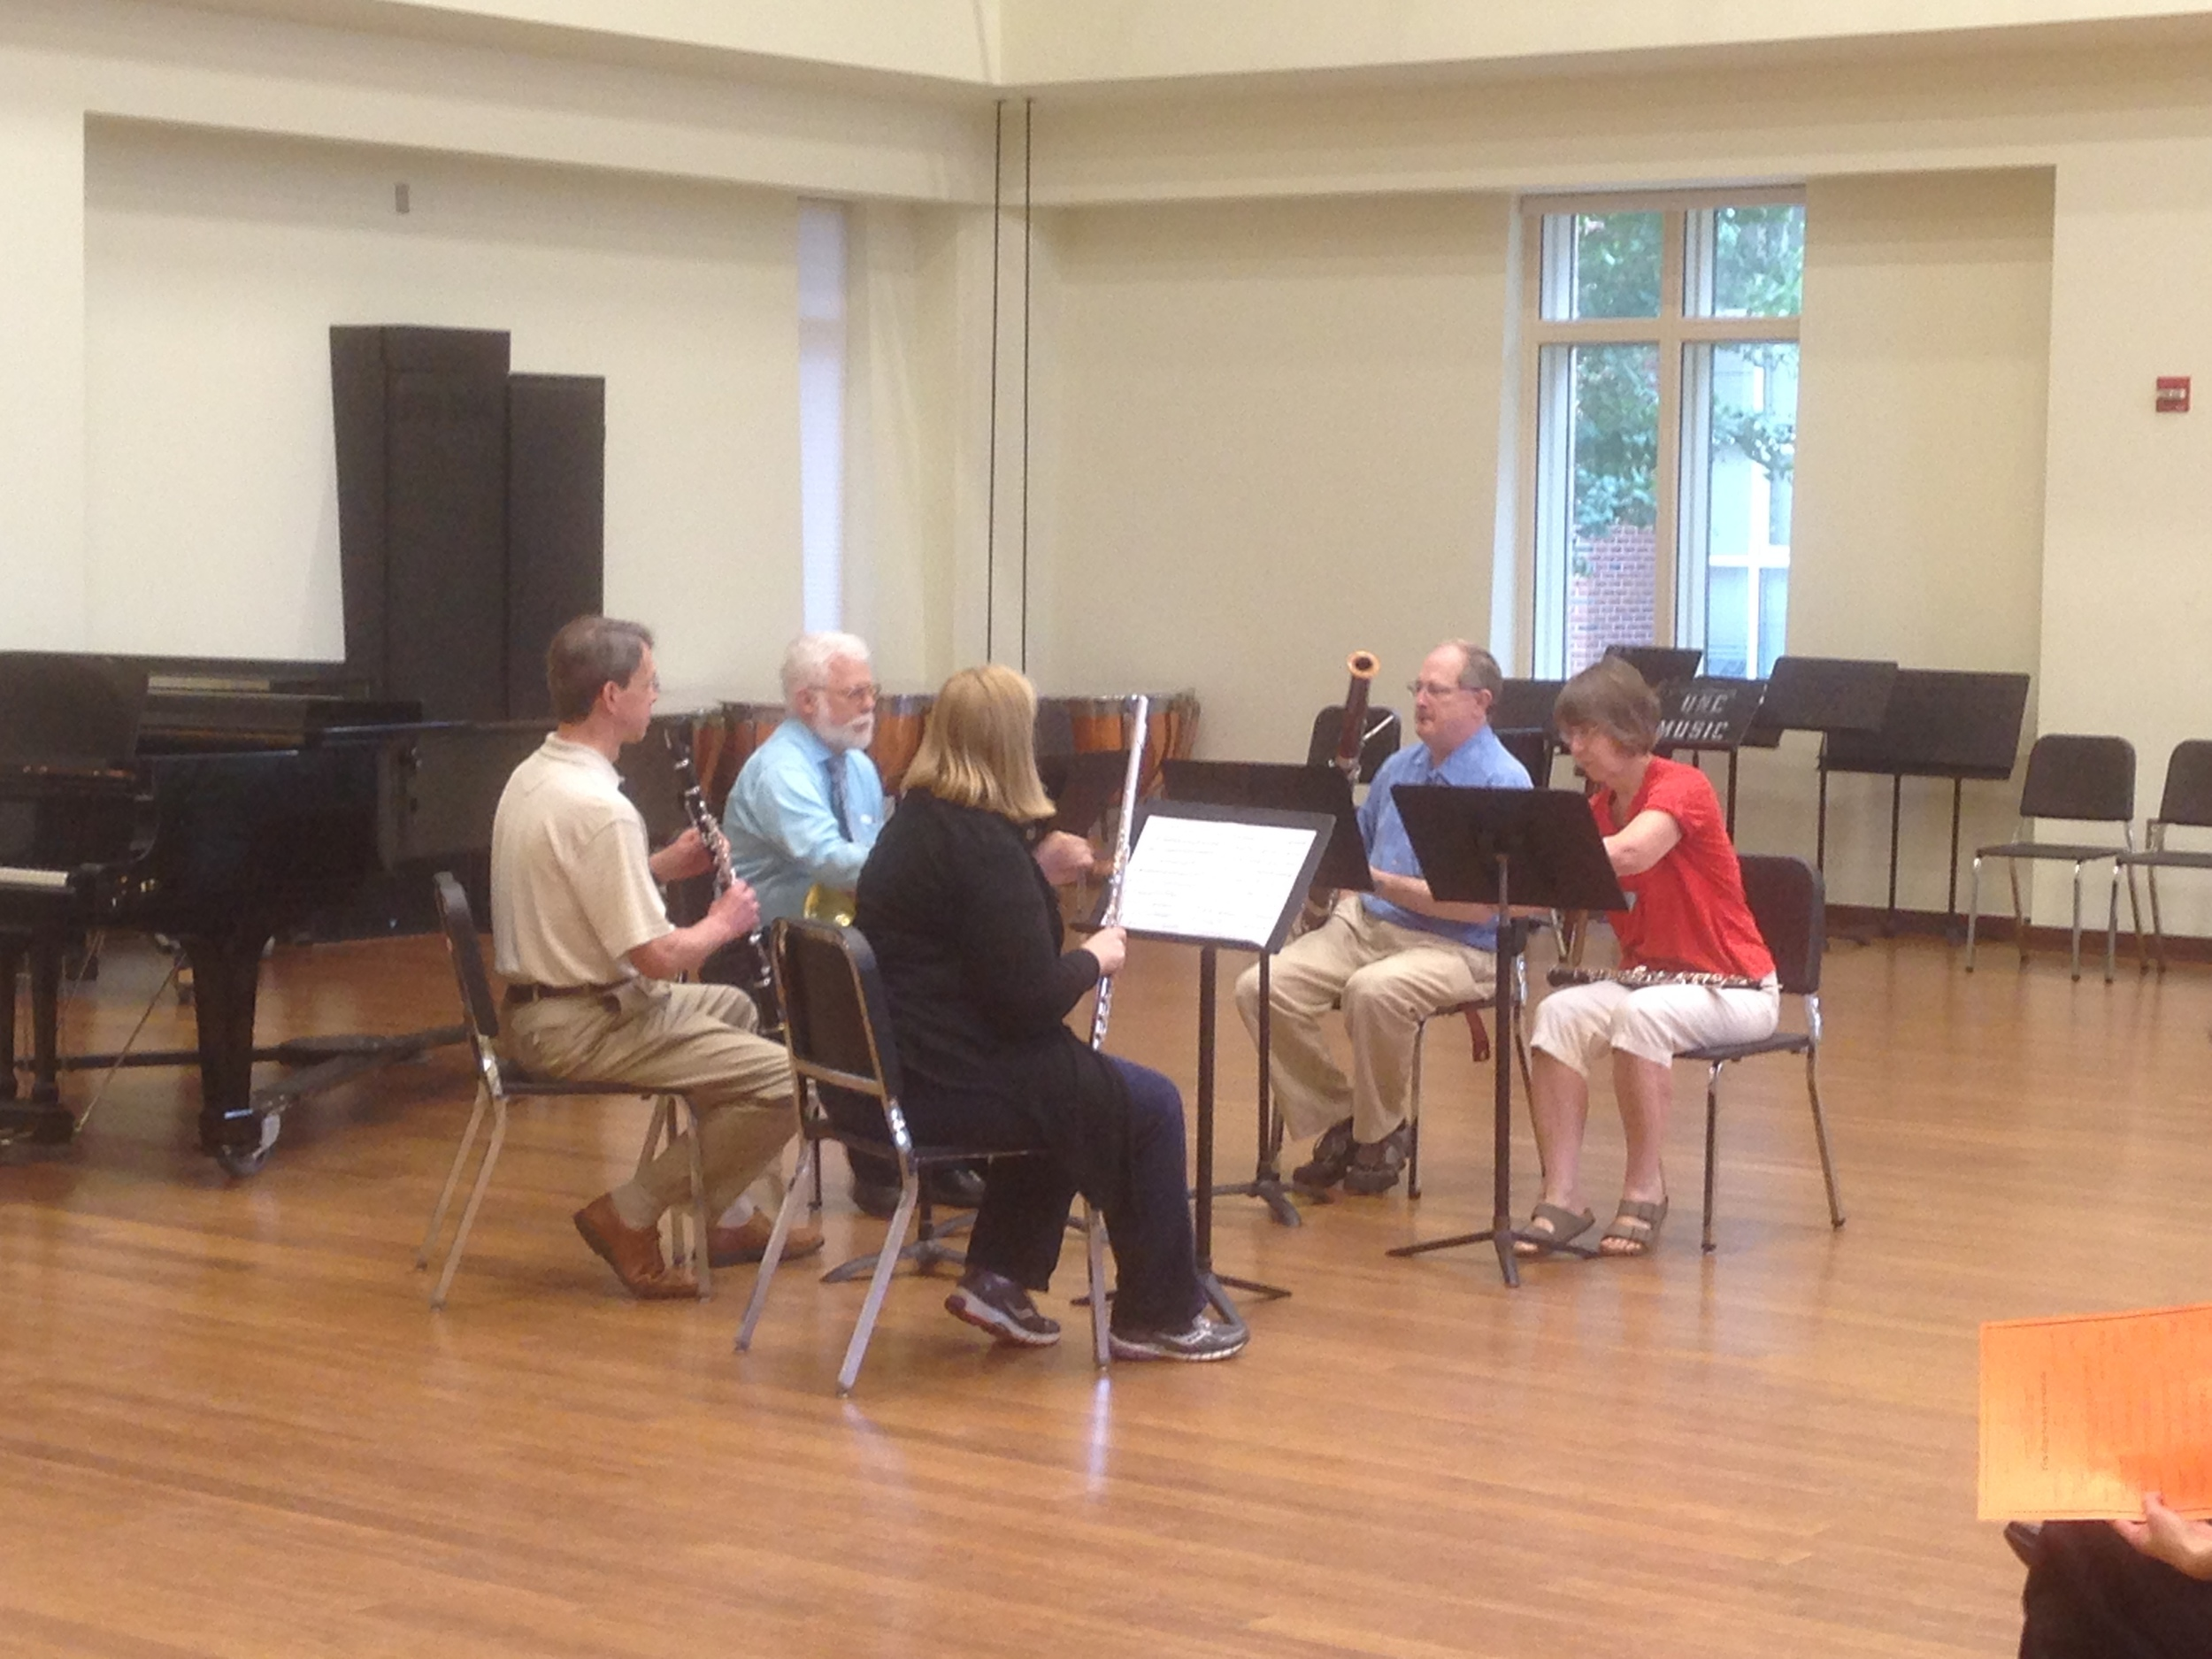 One of the participant ensembles I coached at the workshop